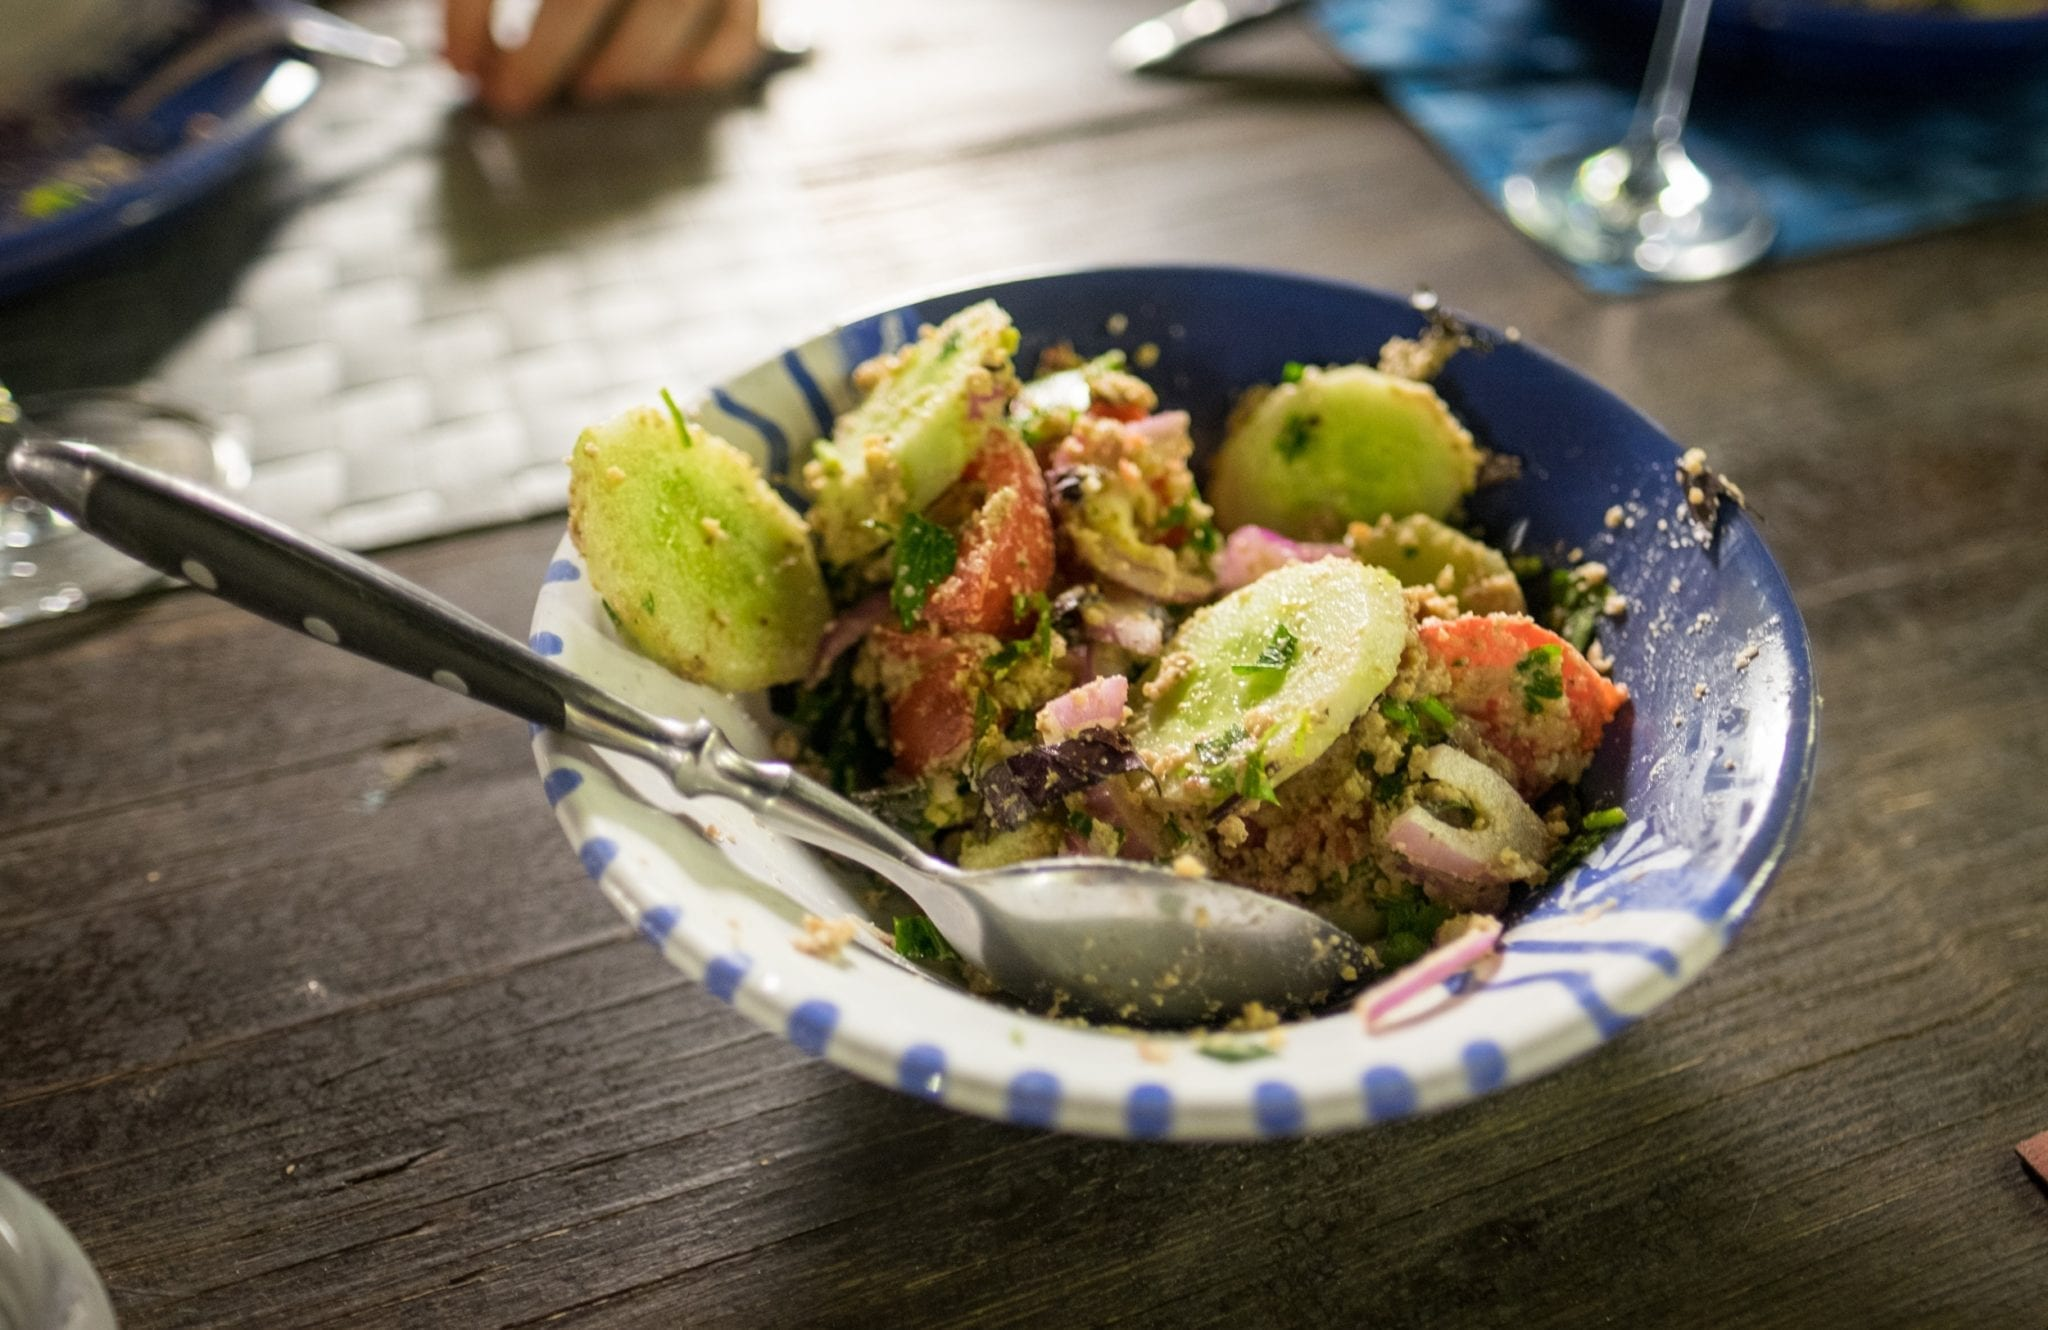 A bowl filled with cucumbers, tomatoes and red onions with walnut and herb paste.